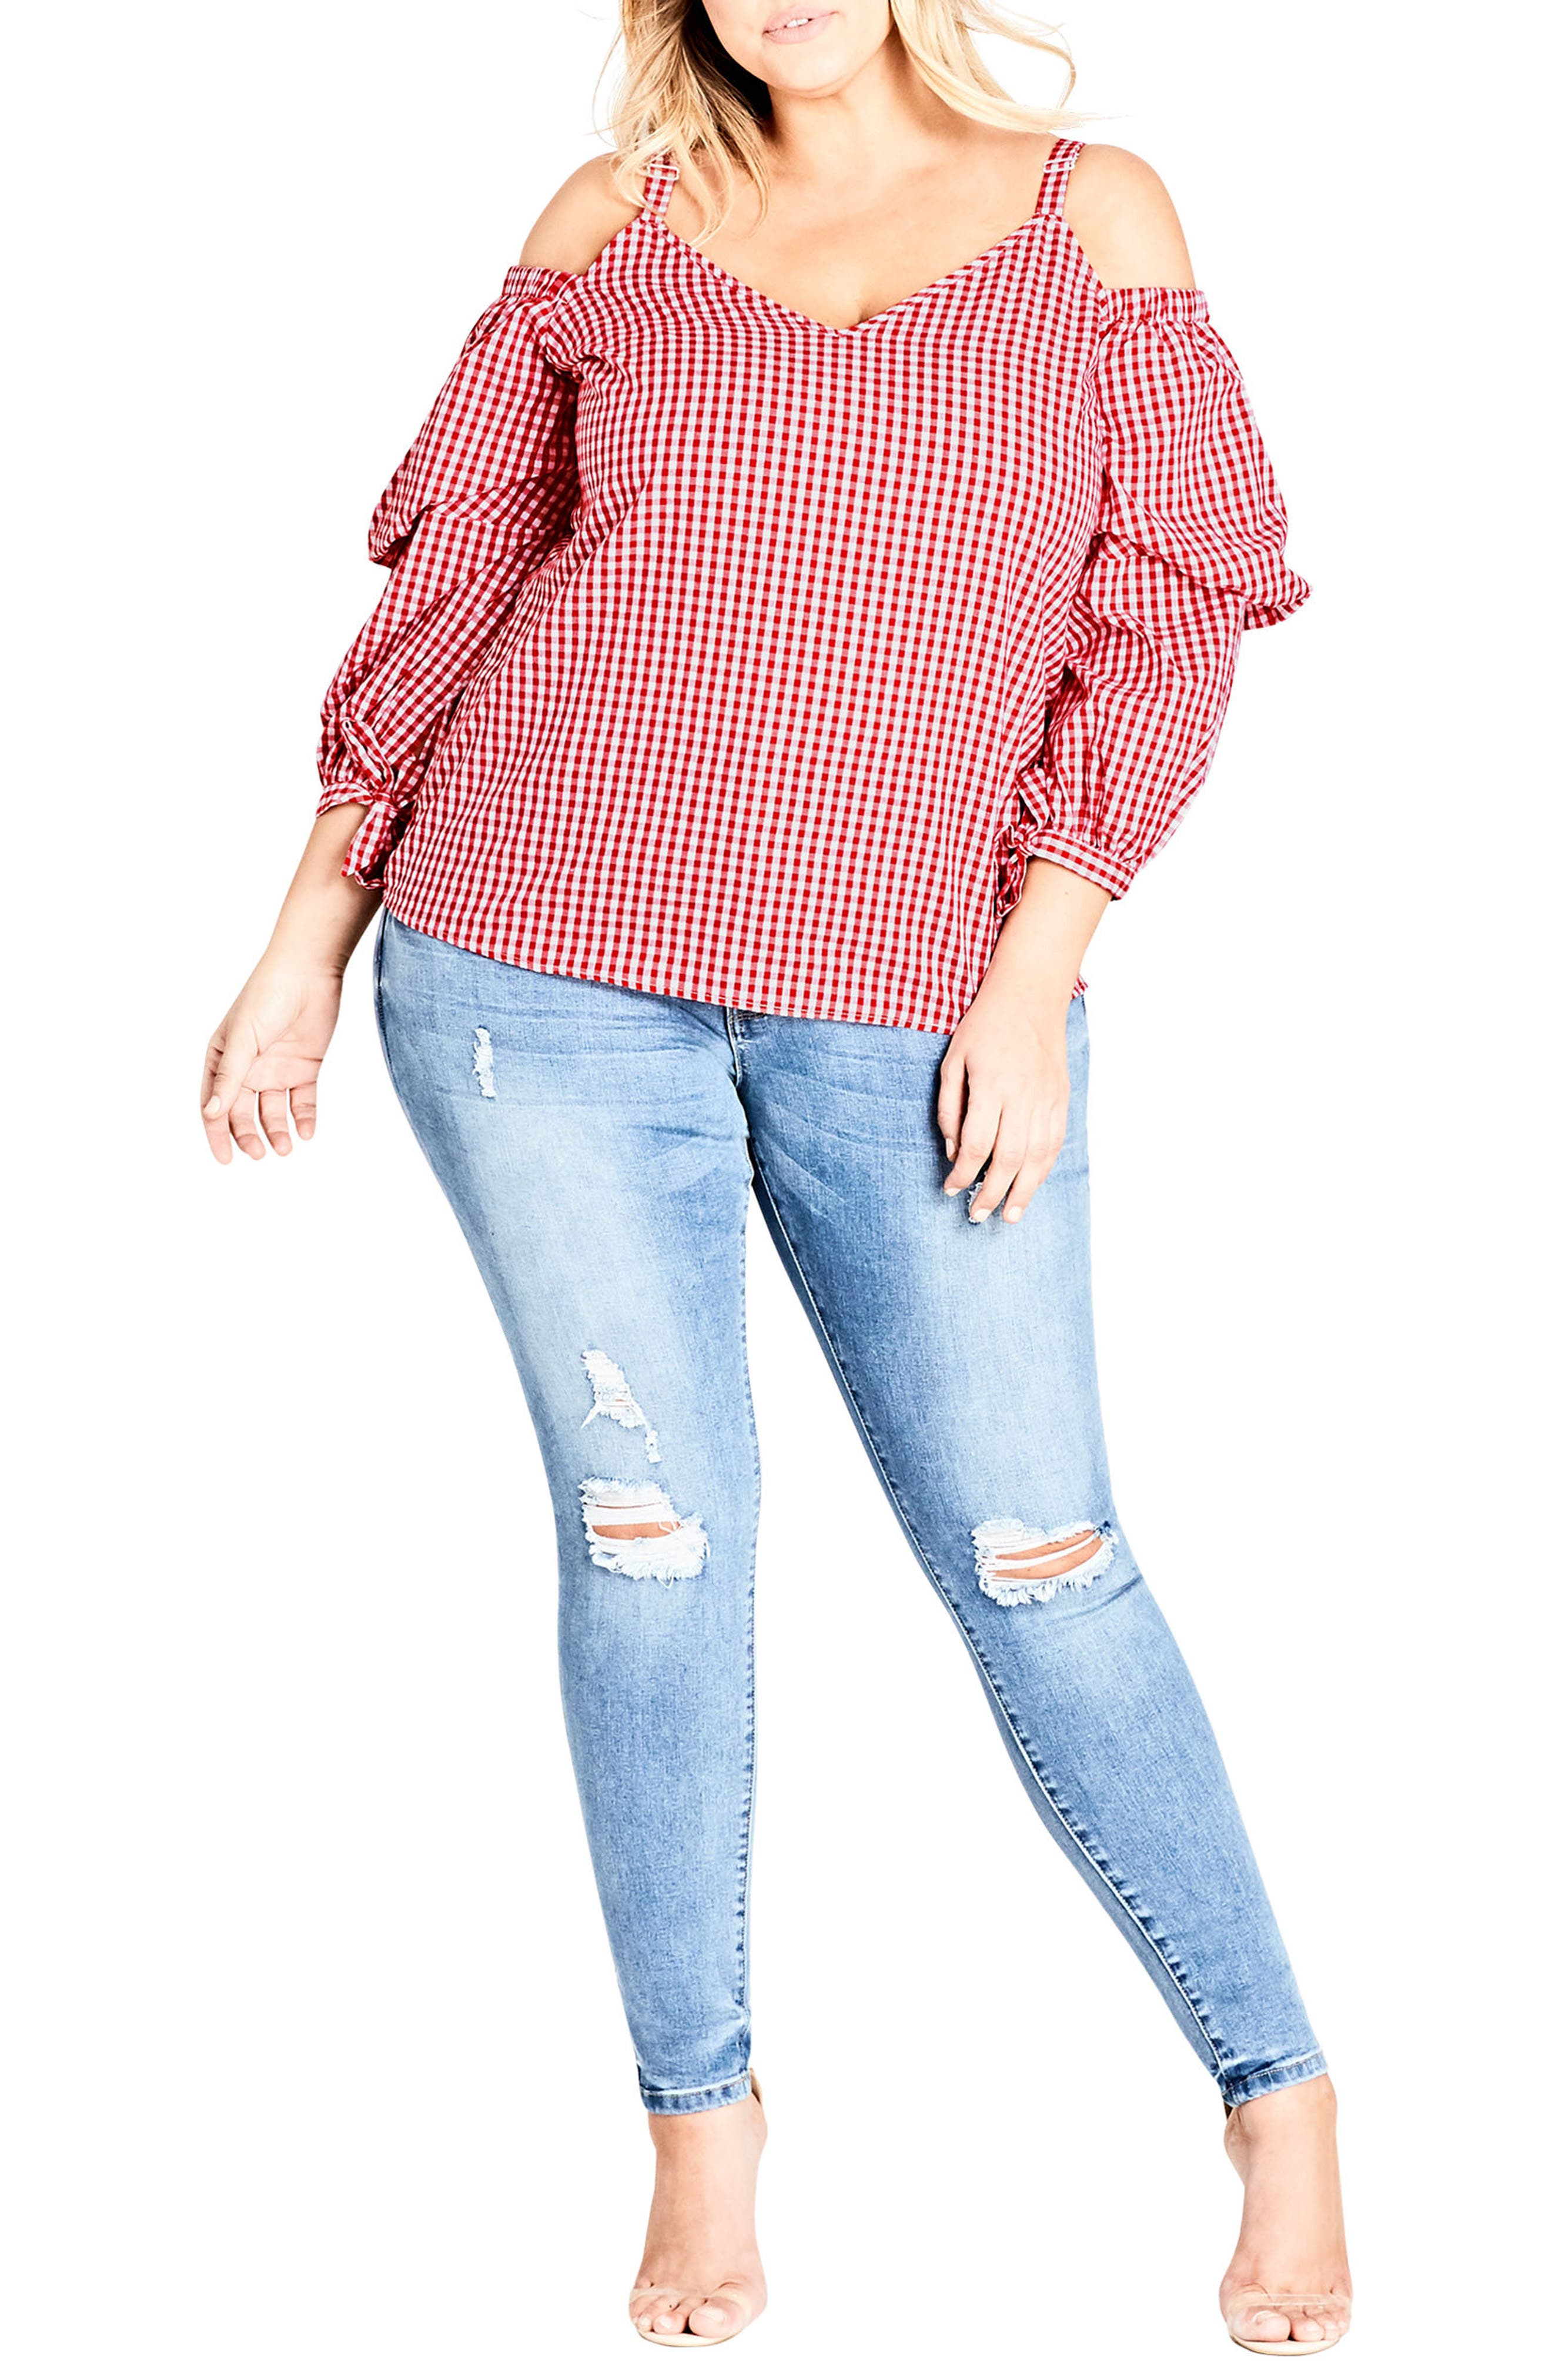 Alternate Image 1 Selected - City Chic Cold Shoulder Picnic Party Top (Plus Size)